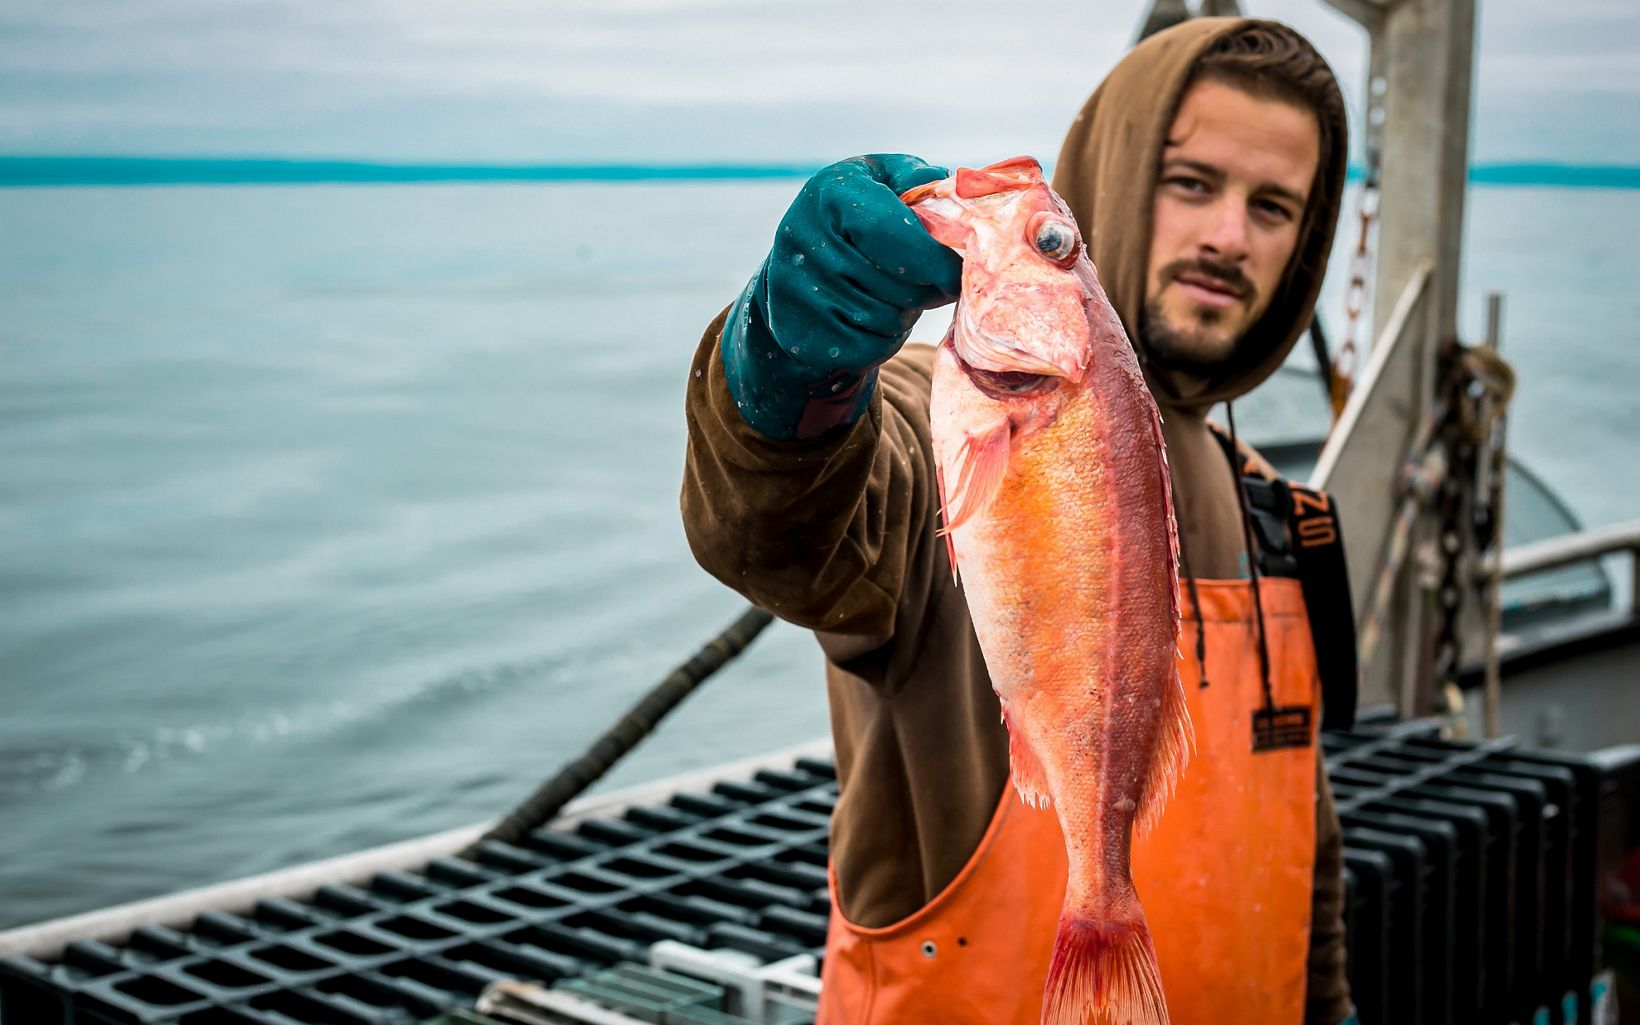 Fisherman in orange waders holding up an orange and red fish by its mouth.